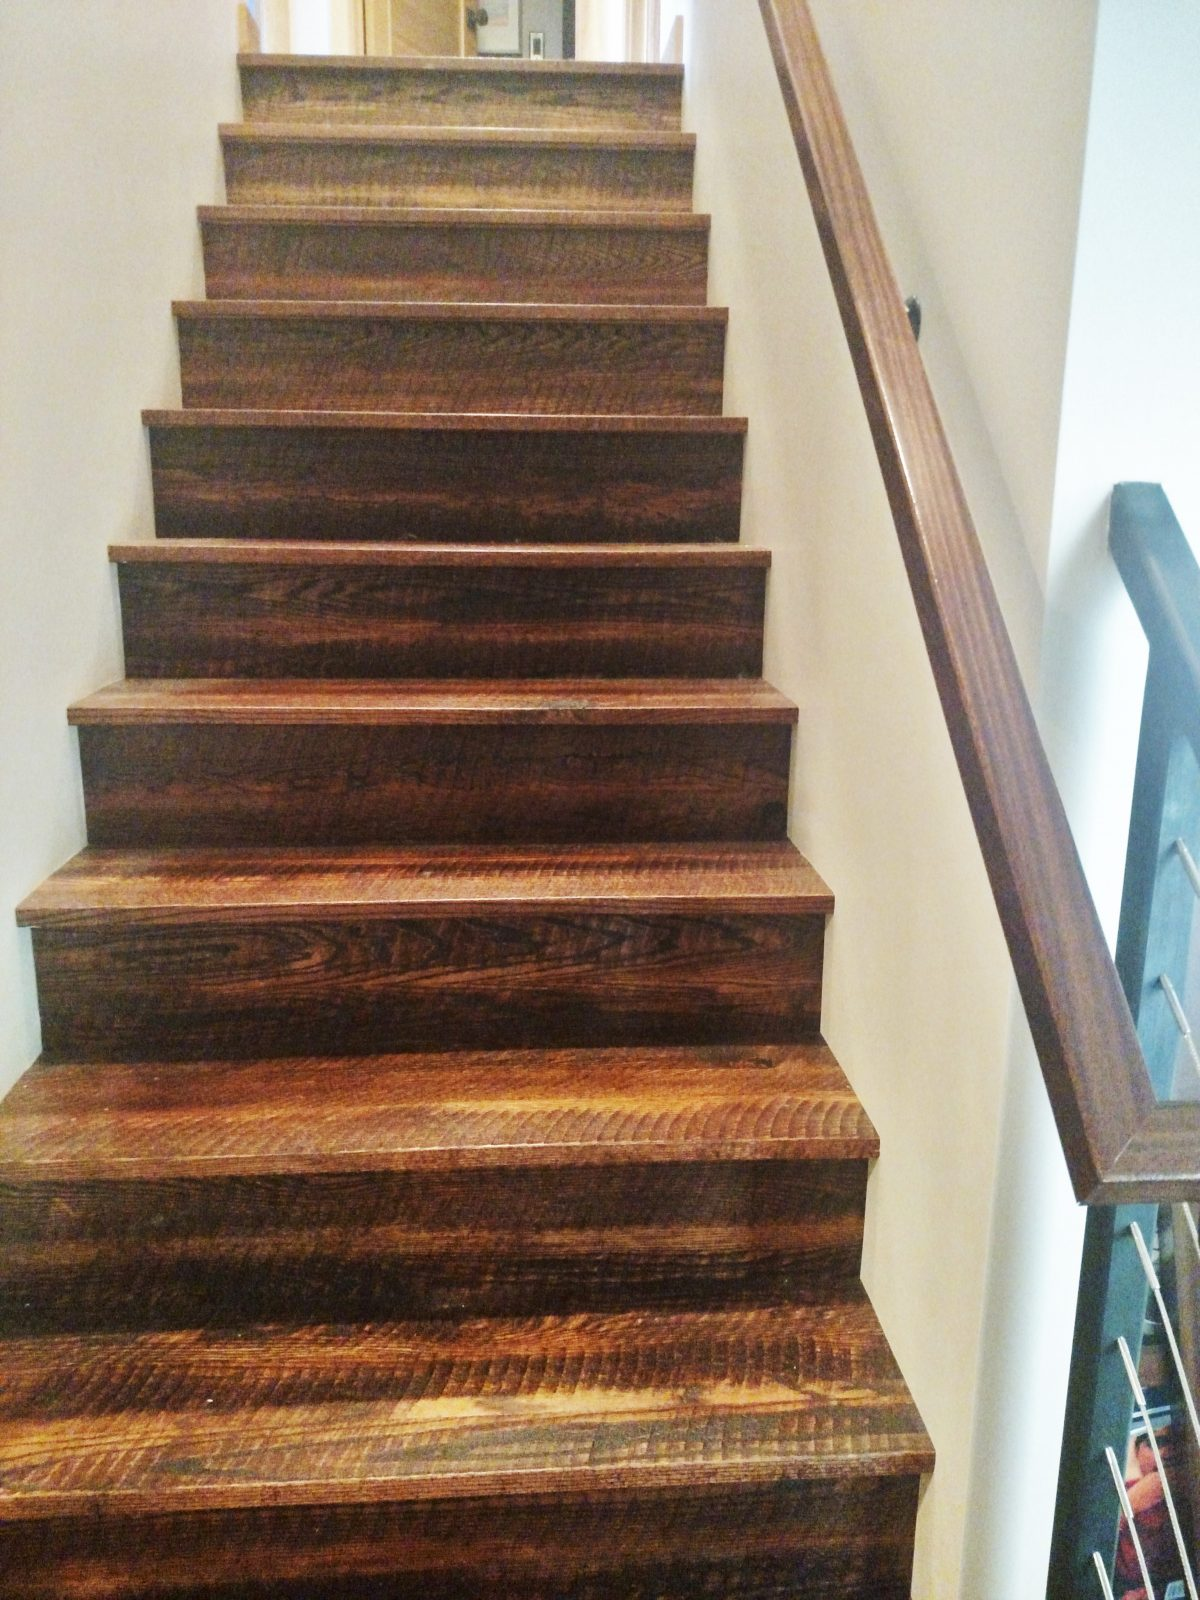 Attirant Our Custom Red Oak Stair Treads With A Kerf Texture